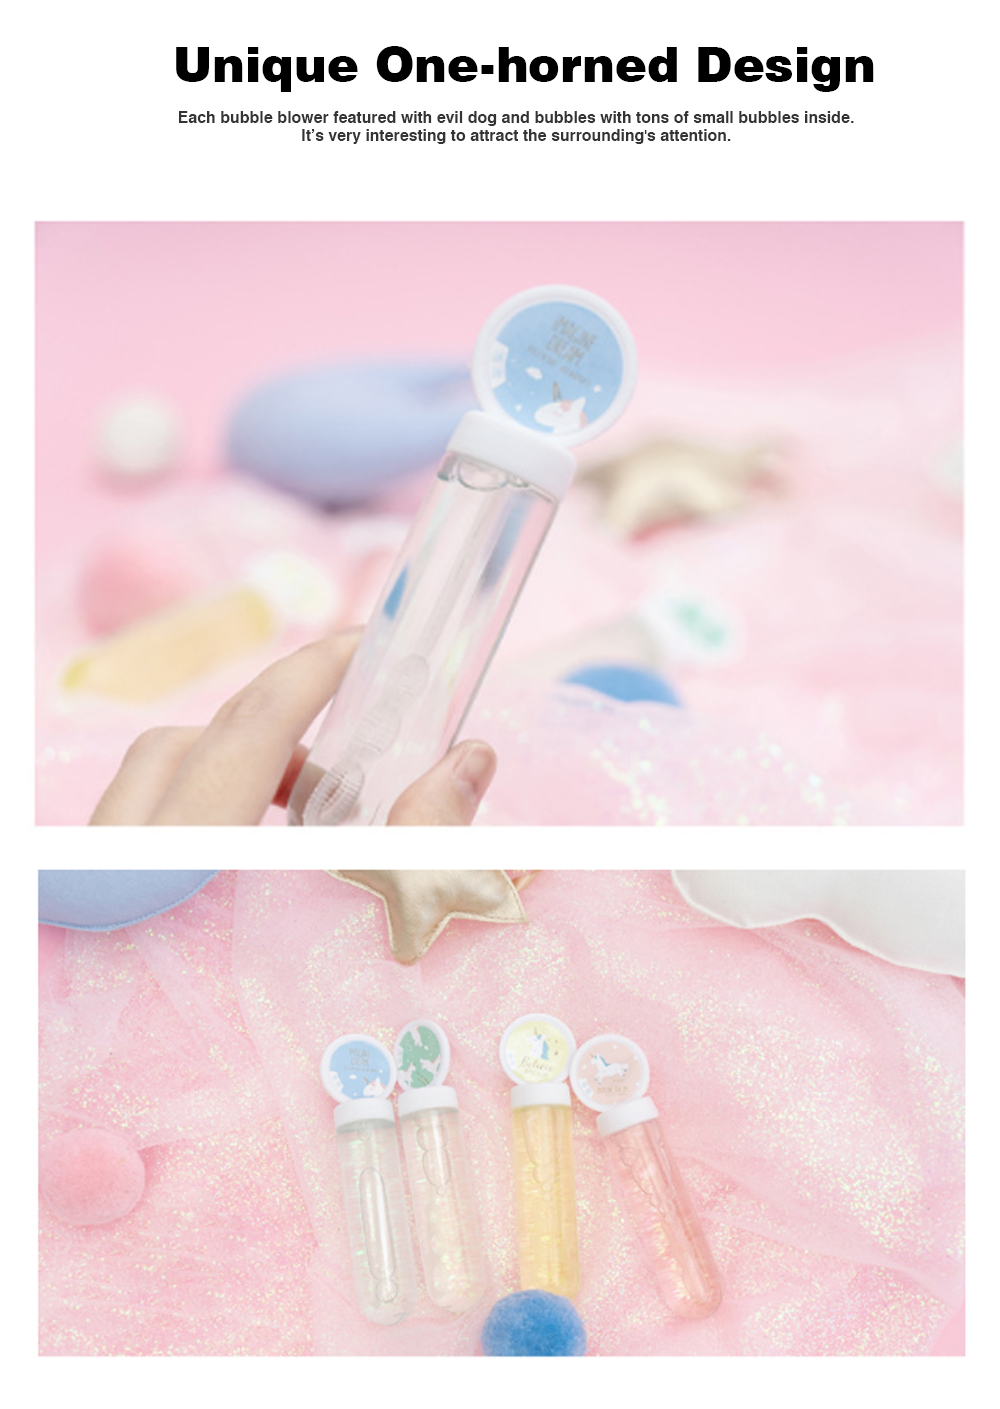 Mini Blowing Bubble Water Toys with Love Song Wheat and One-horned and Fat Test Tube Design for Students 1